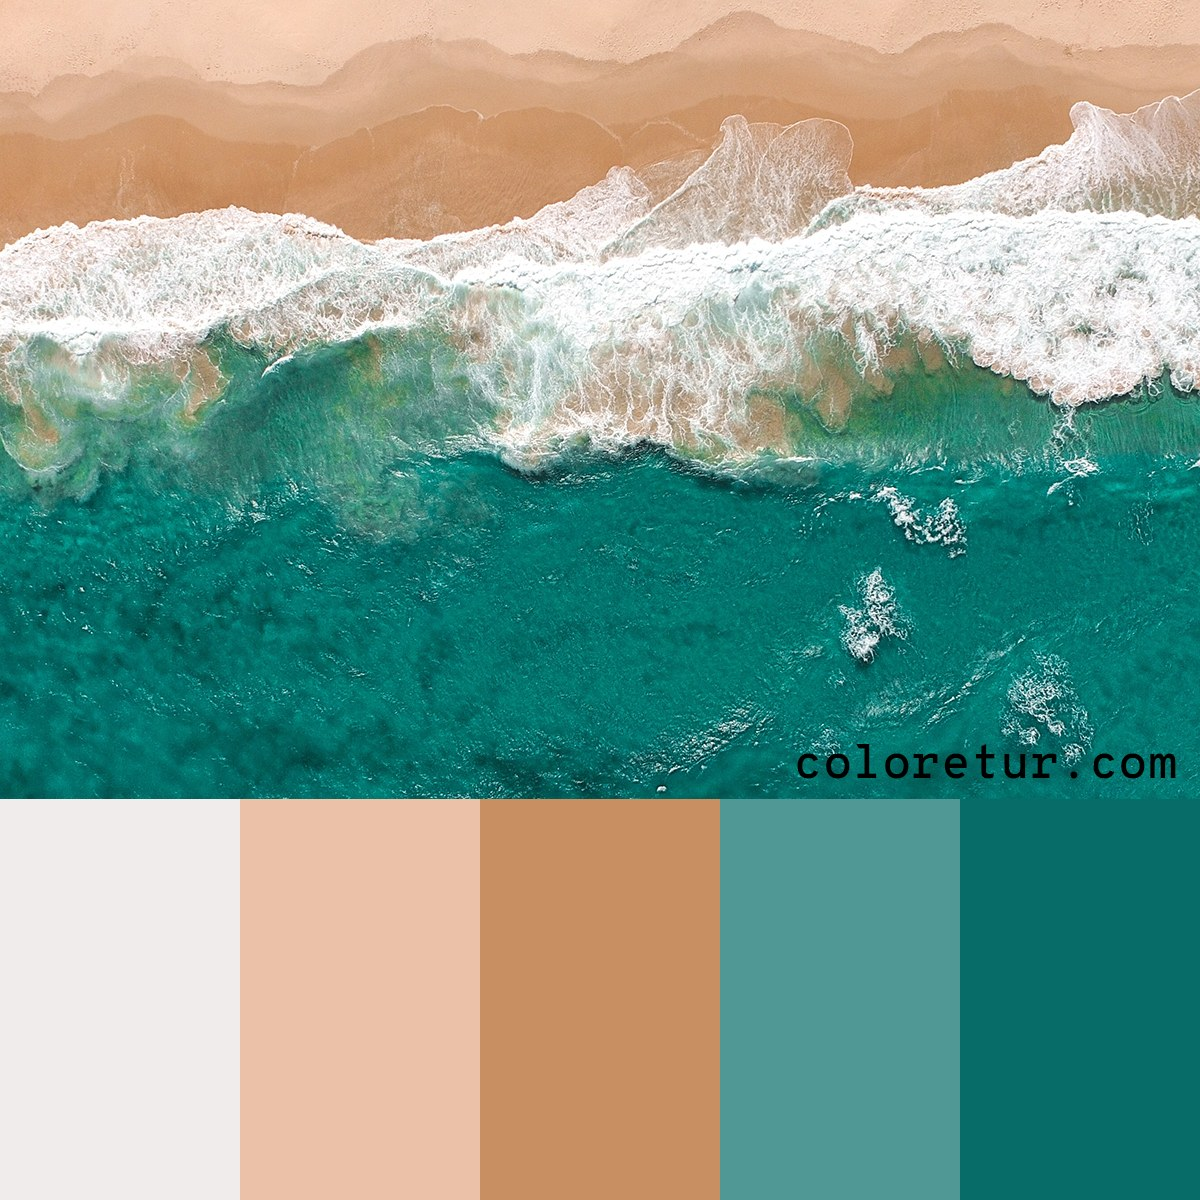 A color palette picked from the high tide